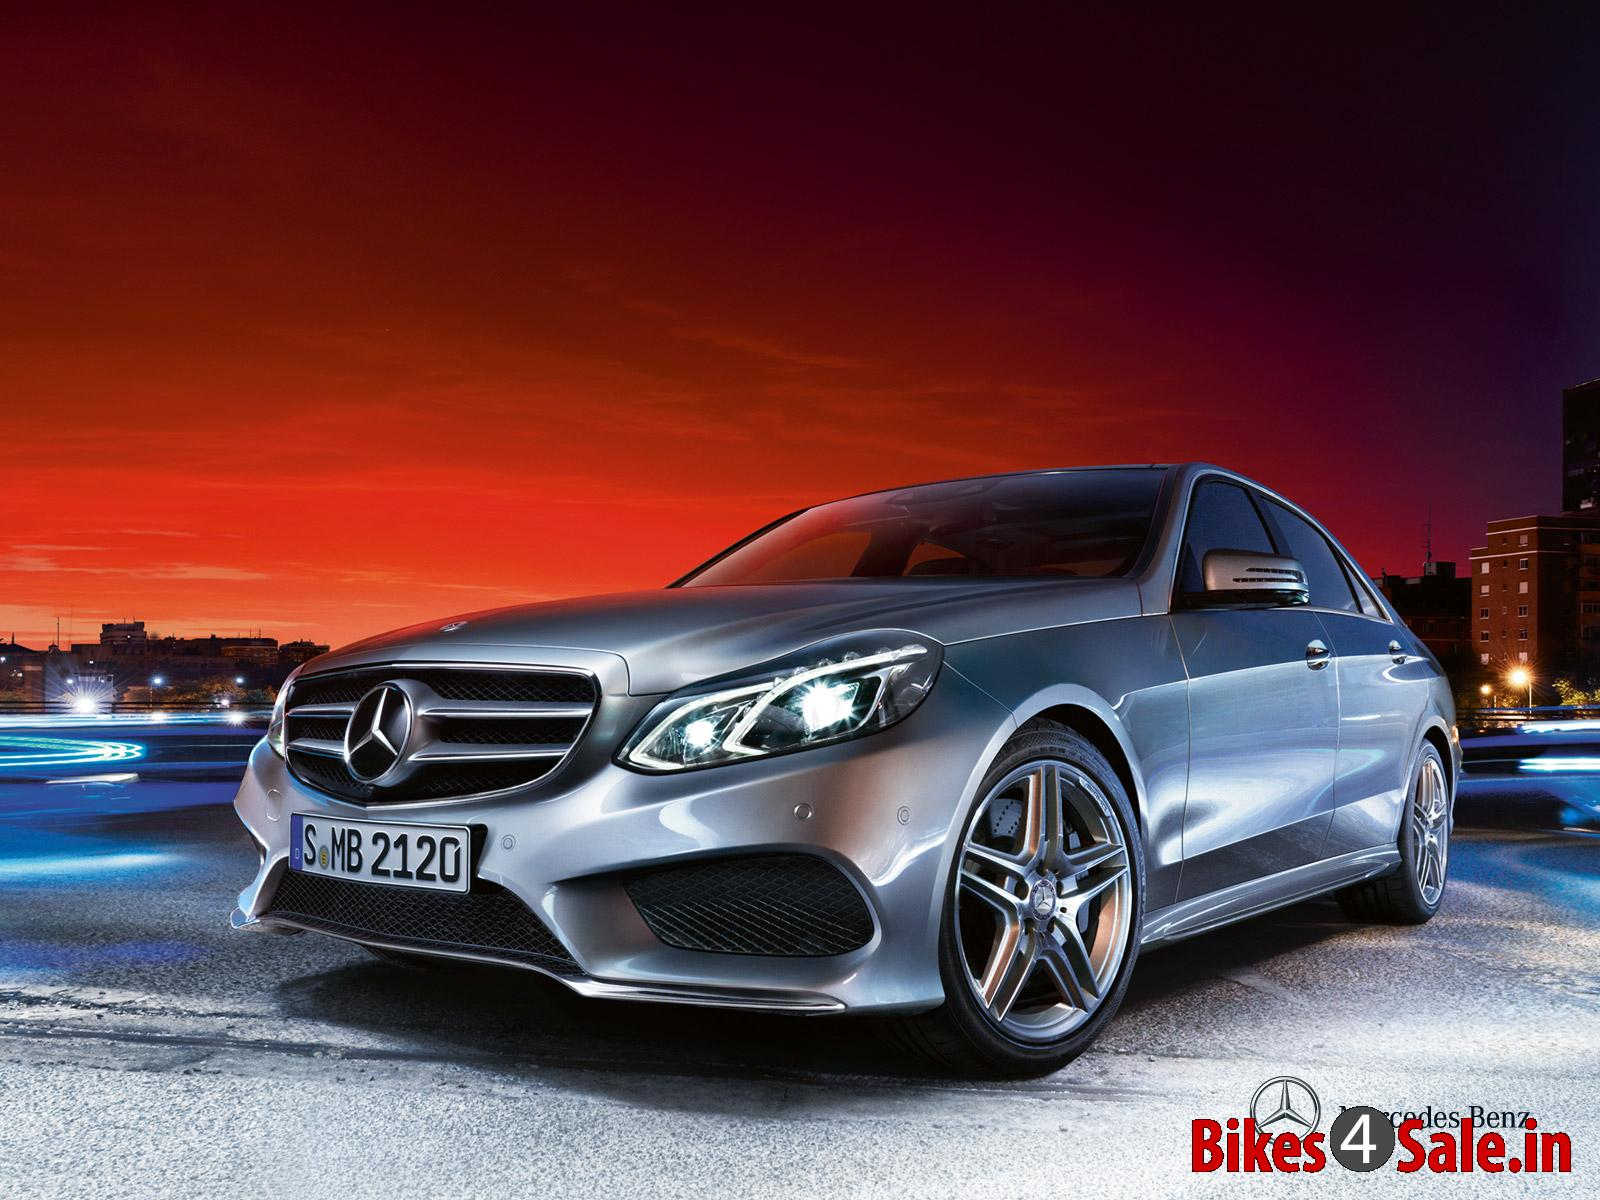 2013 Facelifted Mercedes-Benz E Class